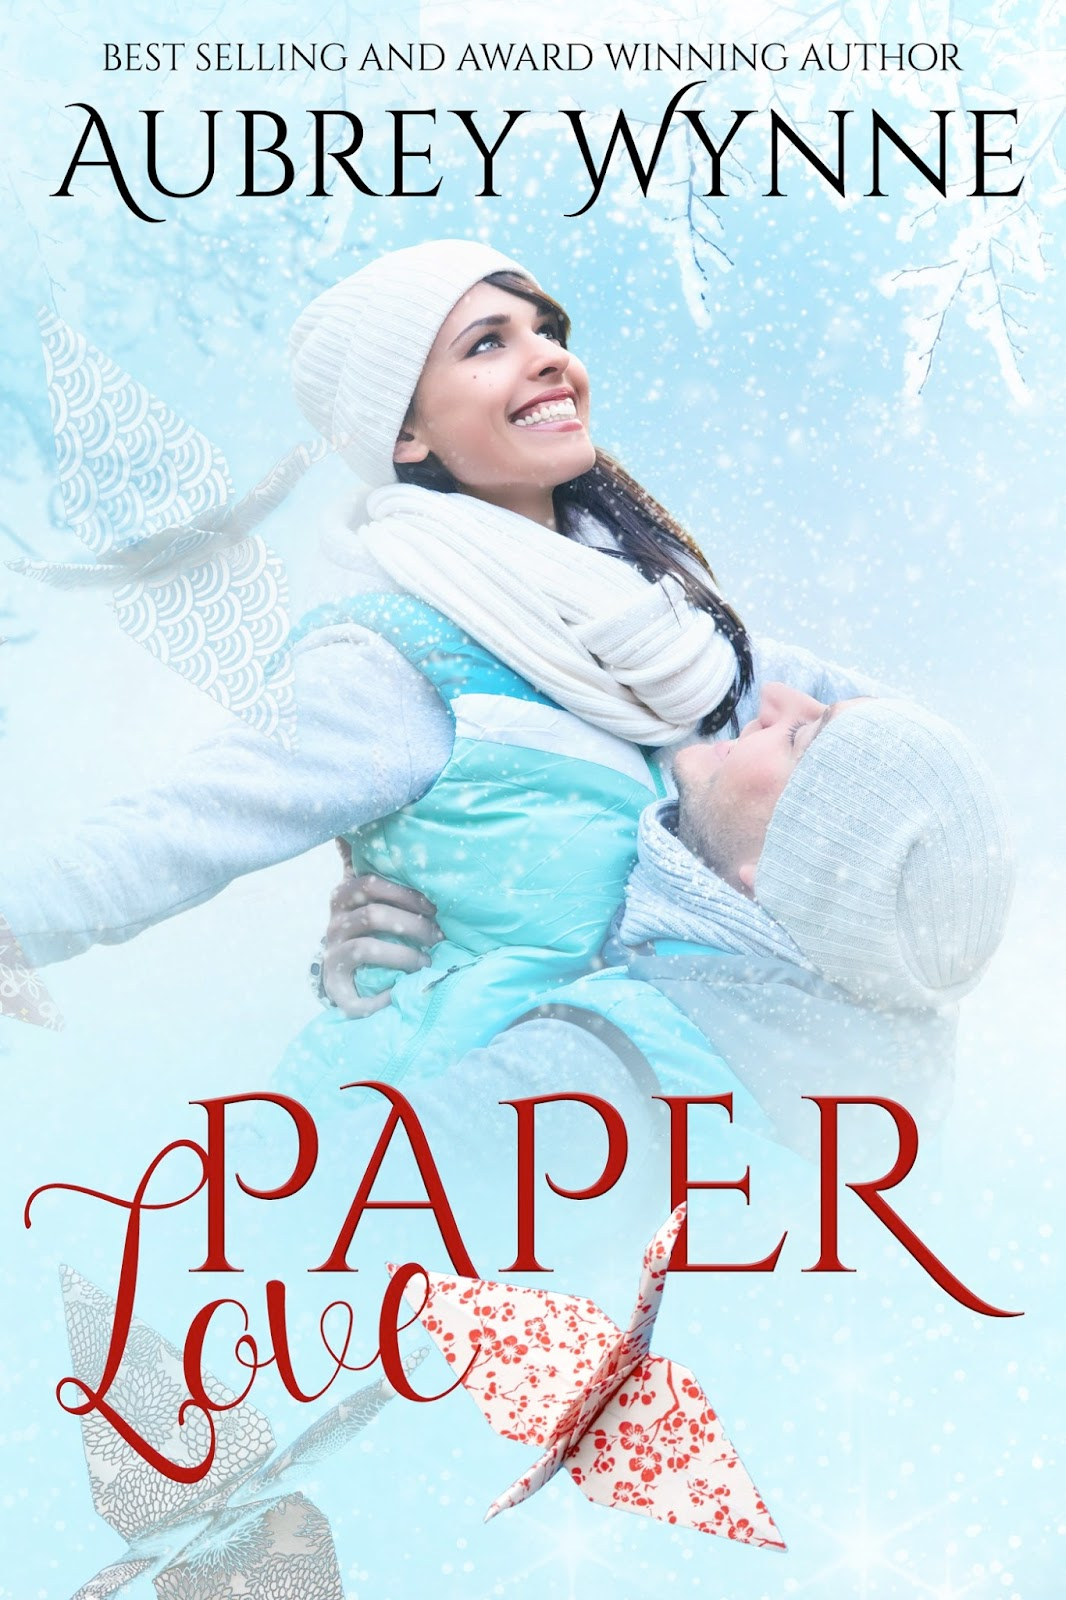 Love Aubrey Book Cover : Blast info for paper love by aubrey wynne « tjlovestoread